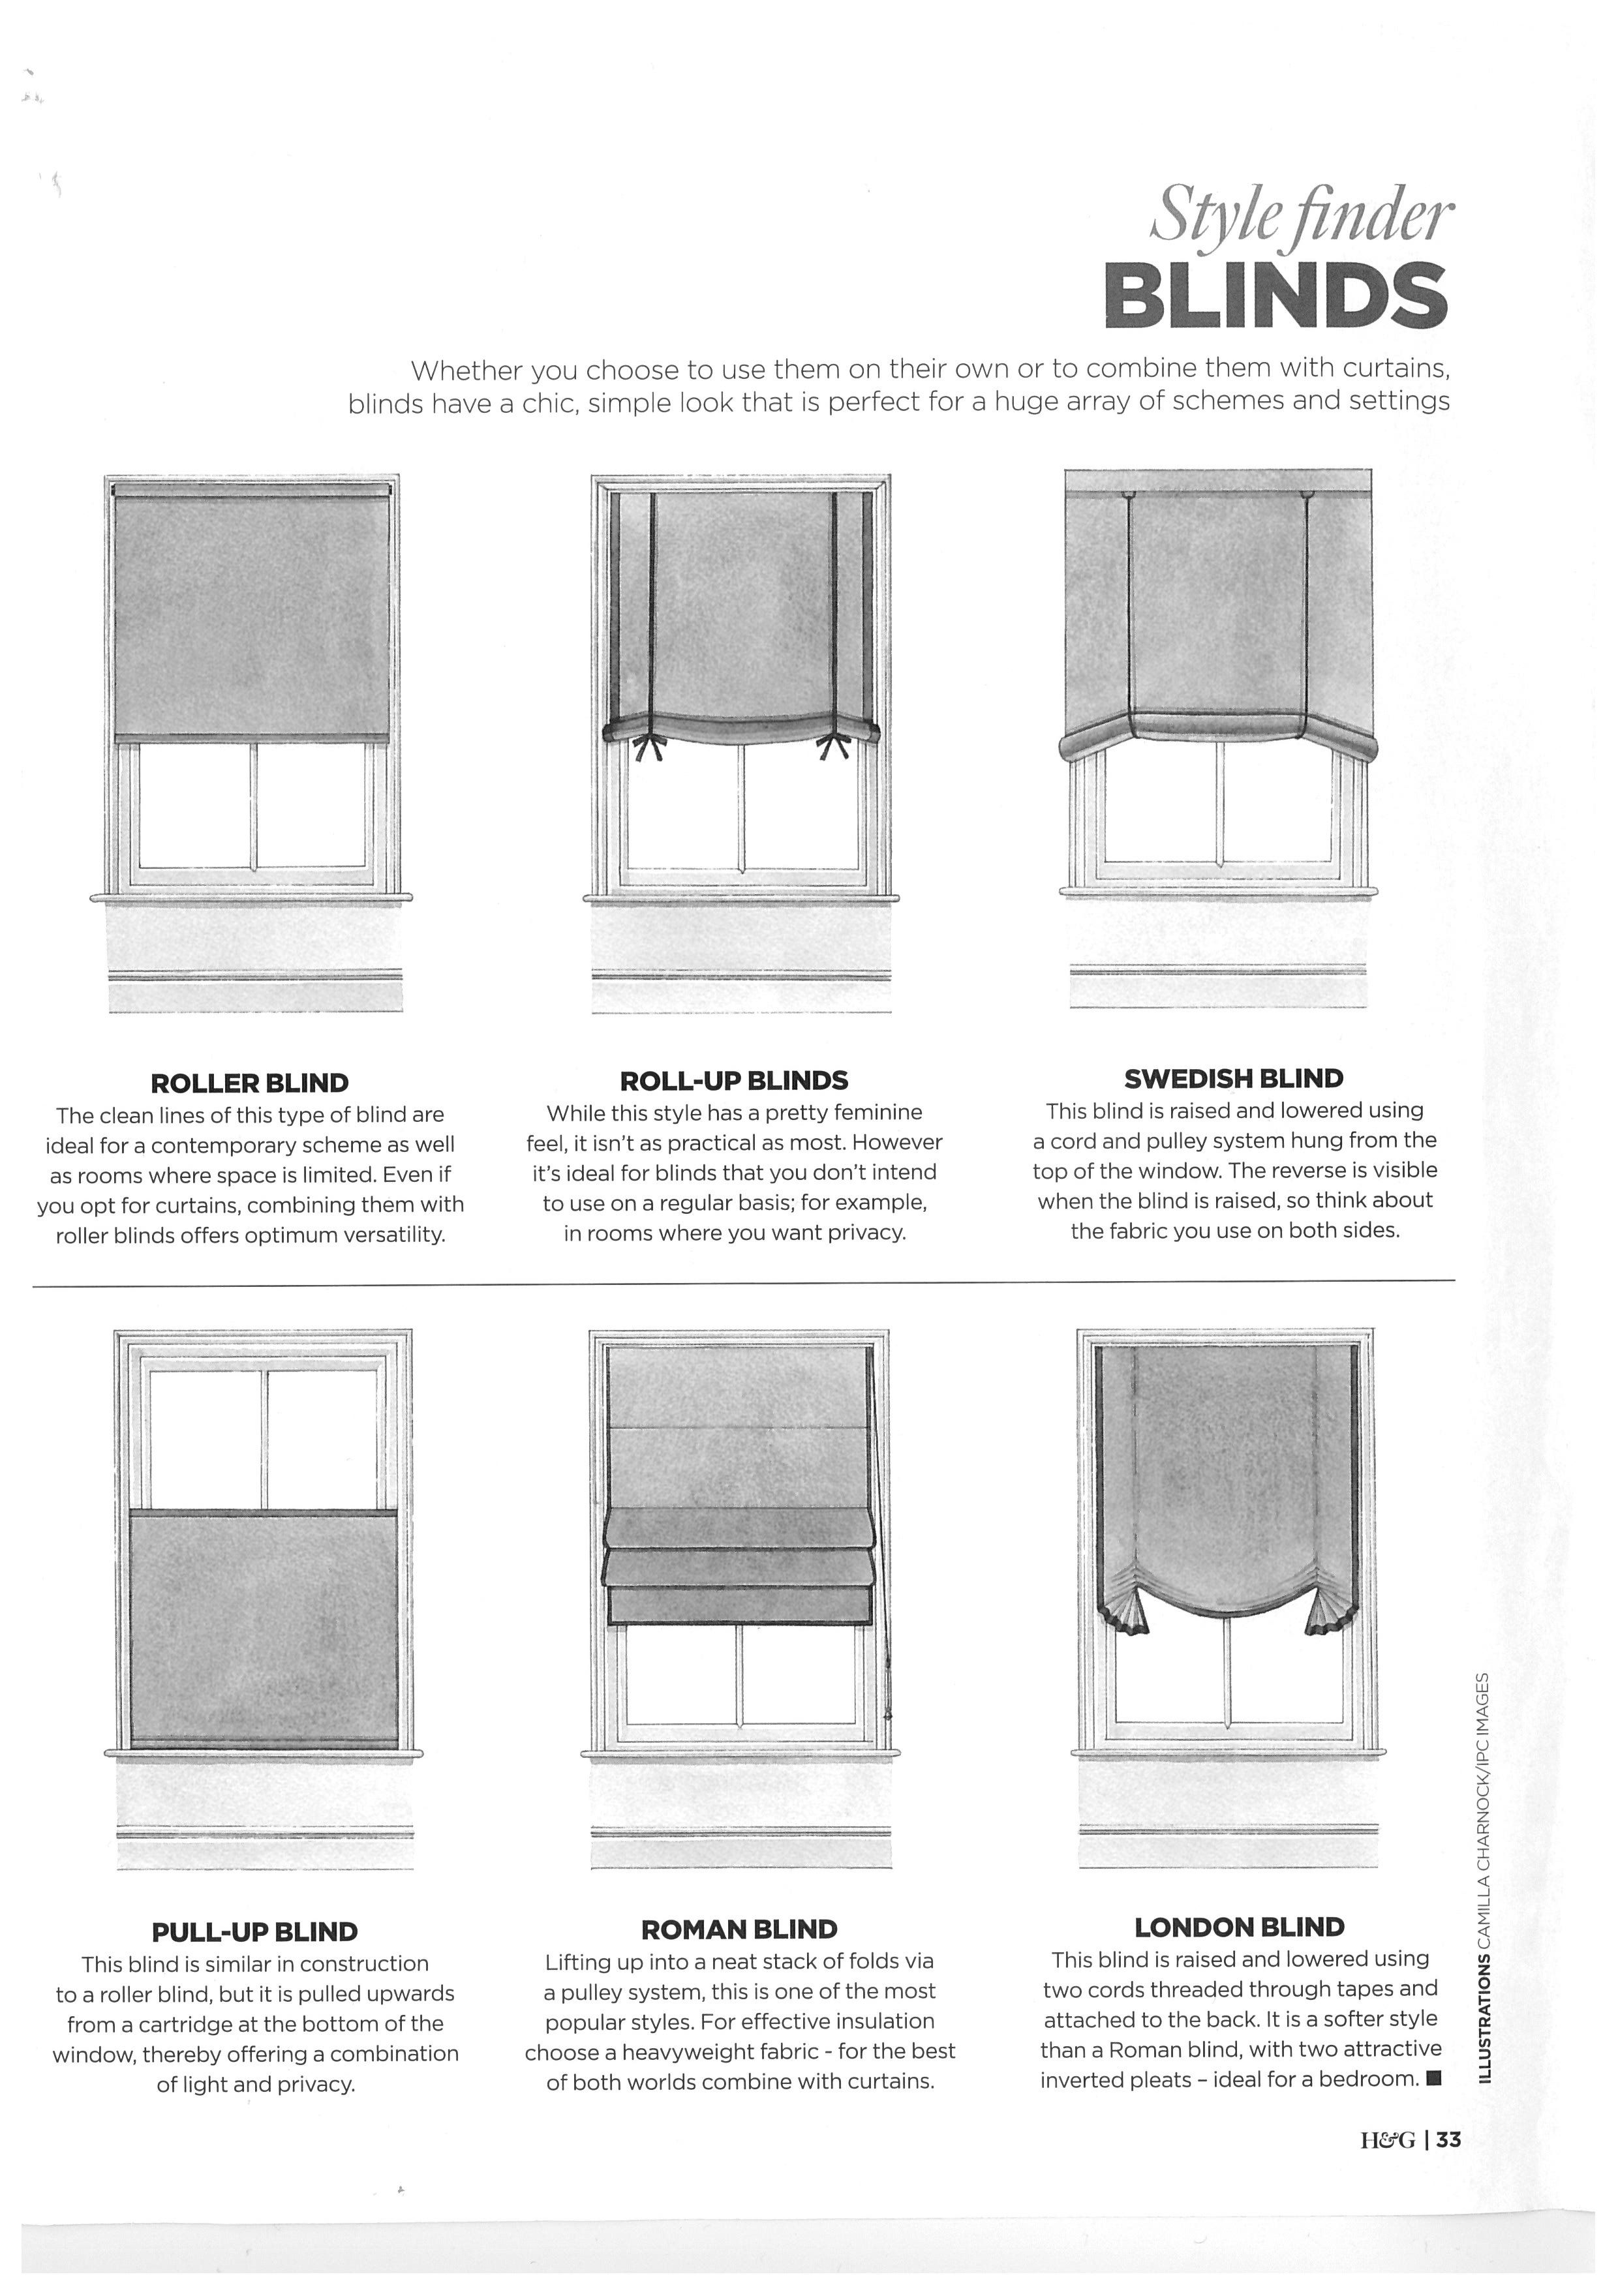 Blinds and curtains combination bedroom - Window Treatements Blind Drawings